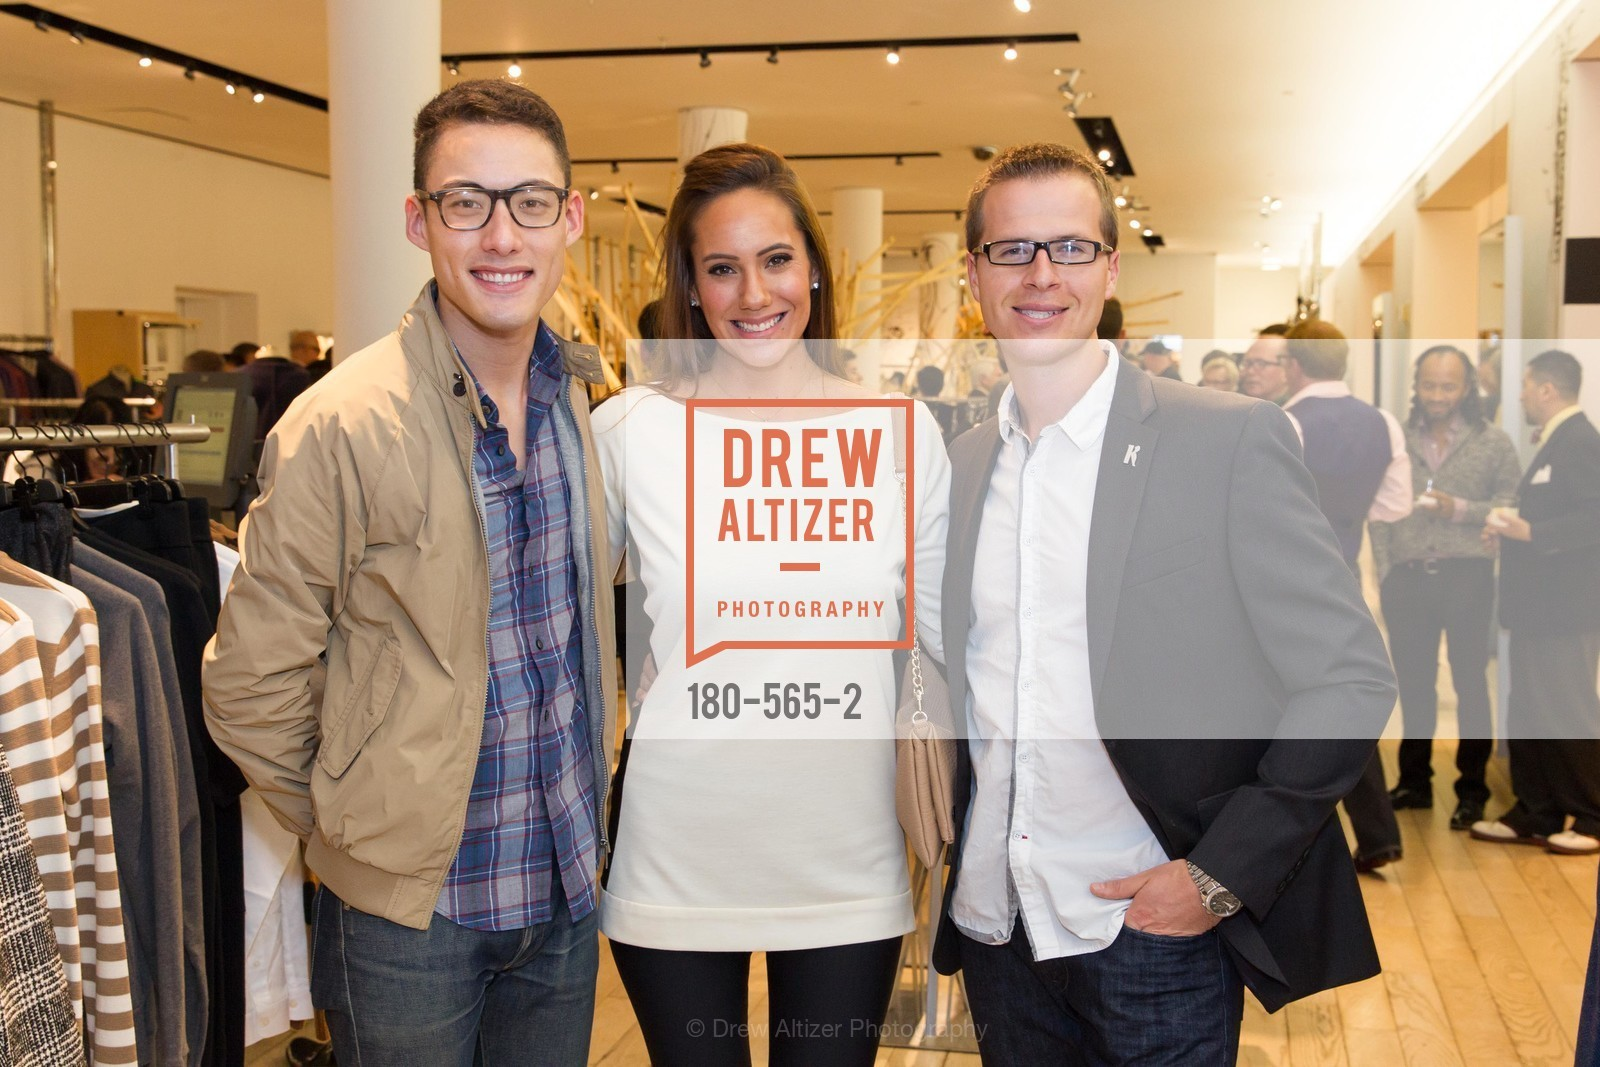 Kevin Huynh, Chisholm Linhard, Travis Tucker, GLAAD GALA Kick-Off Party Hosted by SAKS FIFTH AVENUE, Saks Fifth Avenue. 384 Post Street, September 12th, 2014,Drew Altizer, Drew Altizer Photography, full-service agency, private events, San Francisco photographer, photographer california